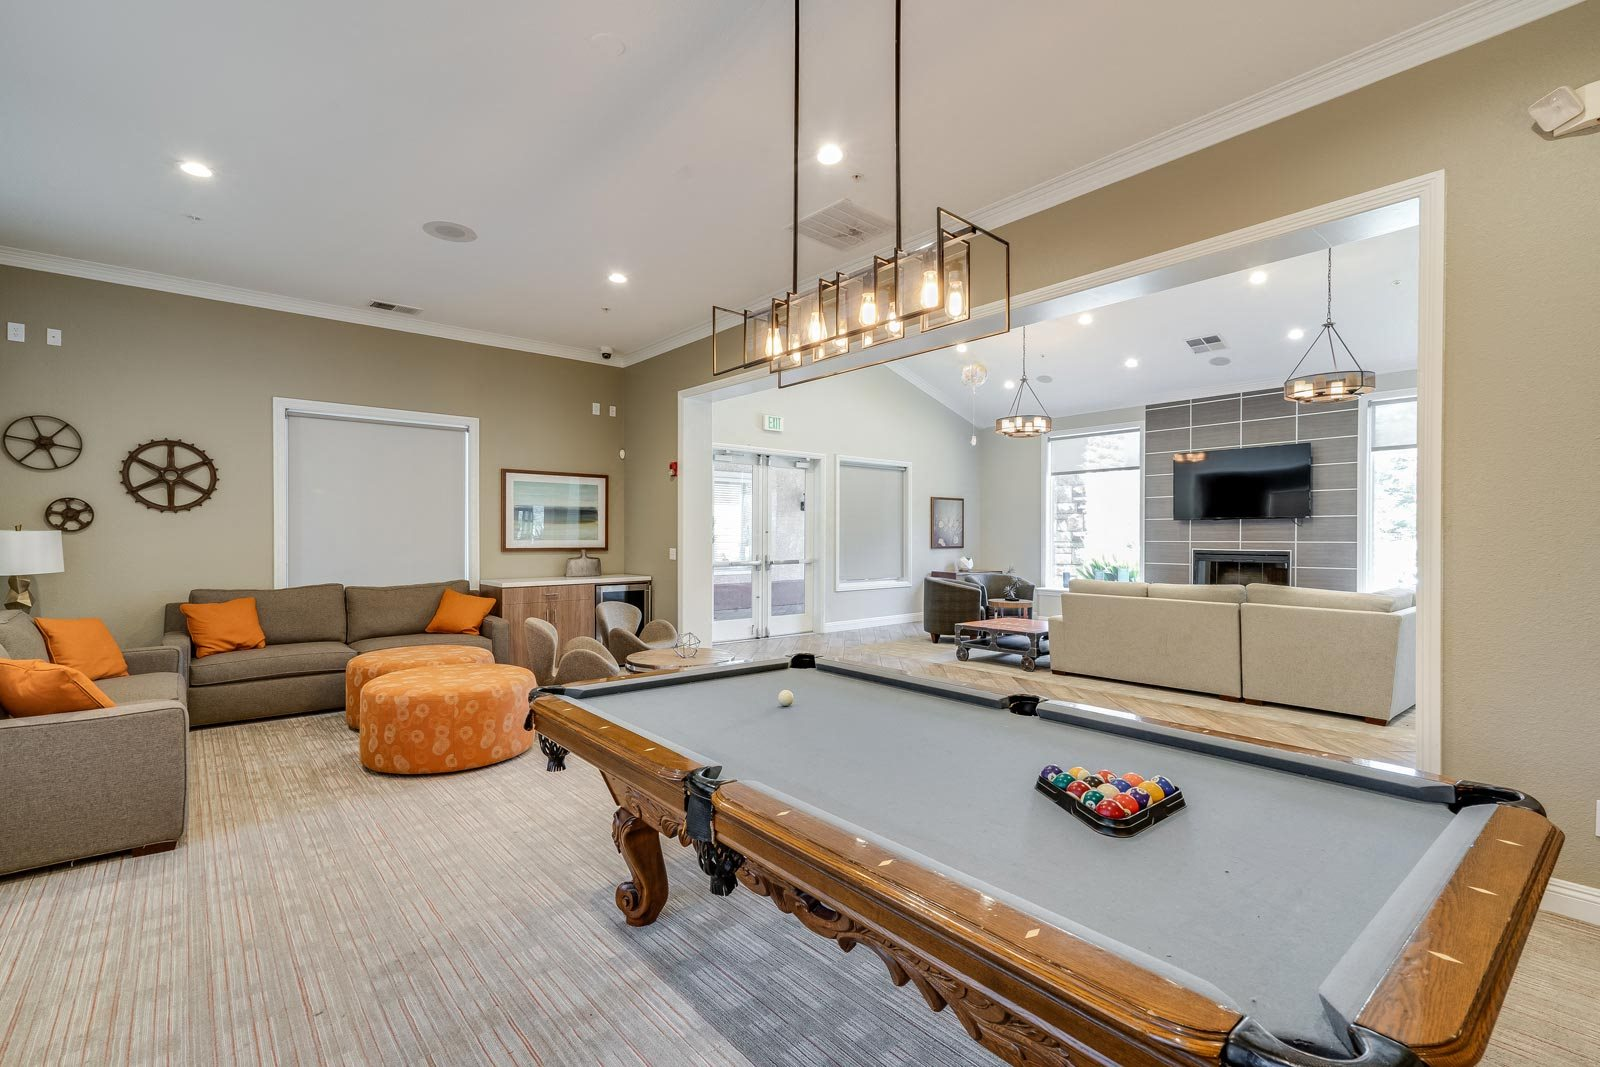 Game Room with Pool Table at Windsor at Redwood Creek, Rohnert Park, CA